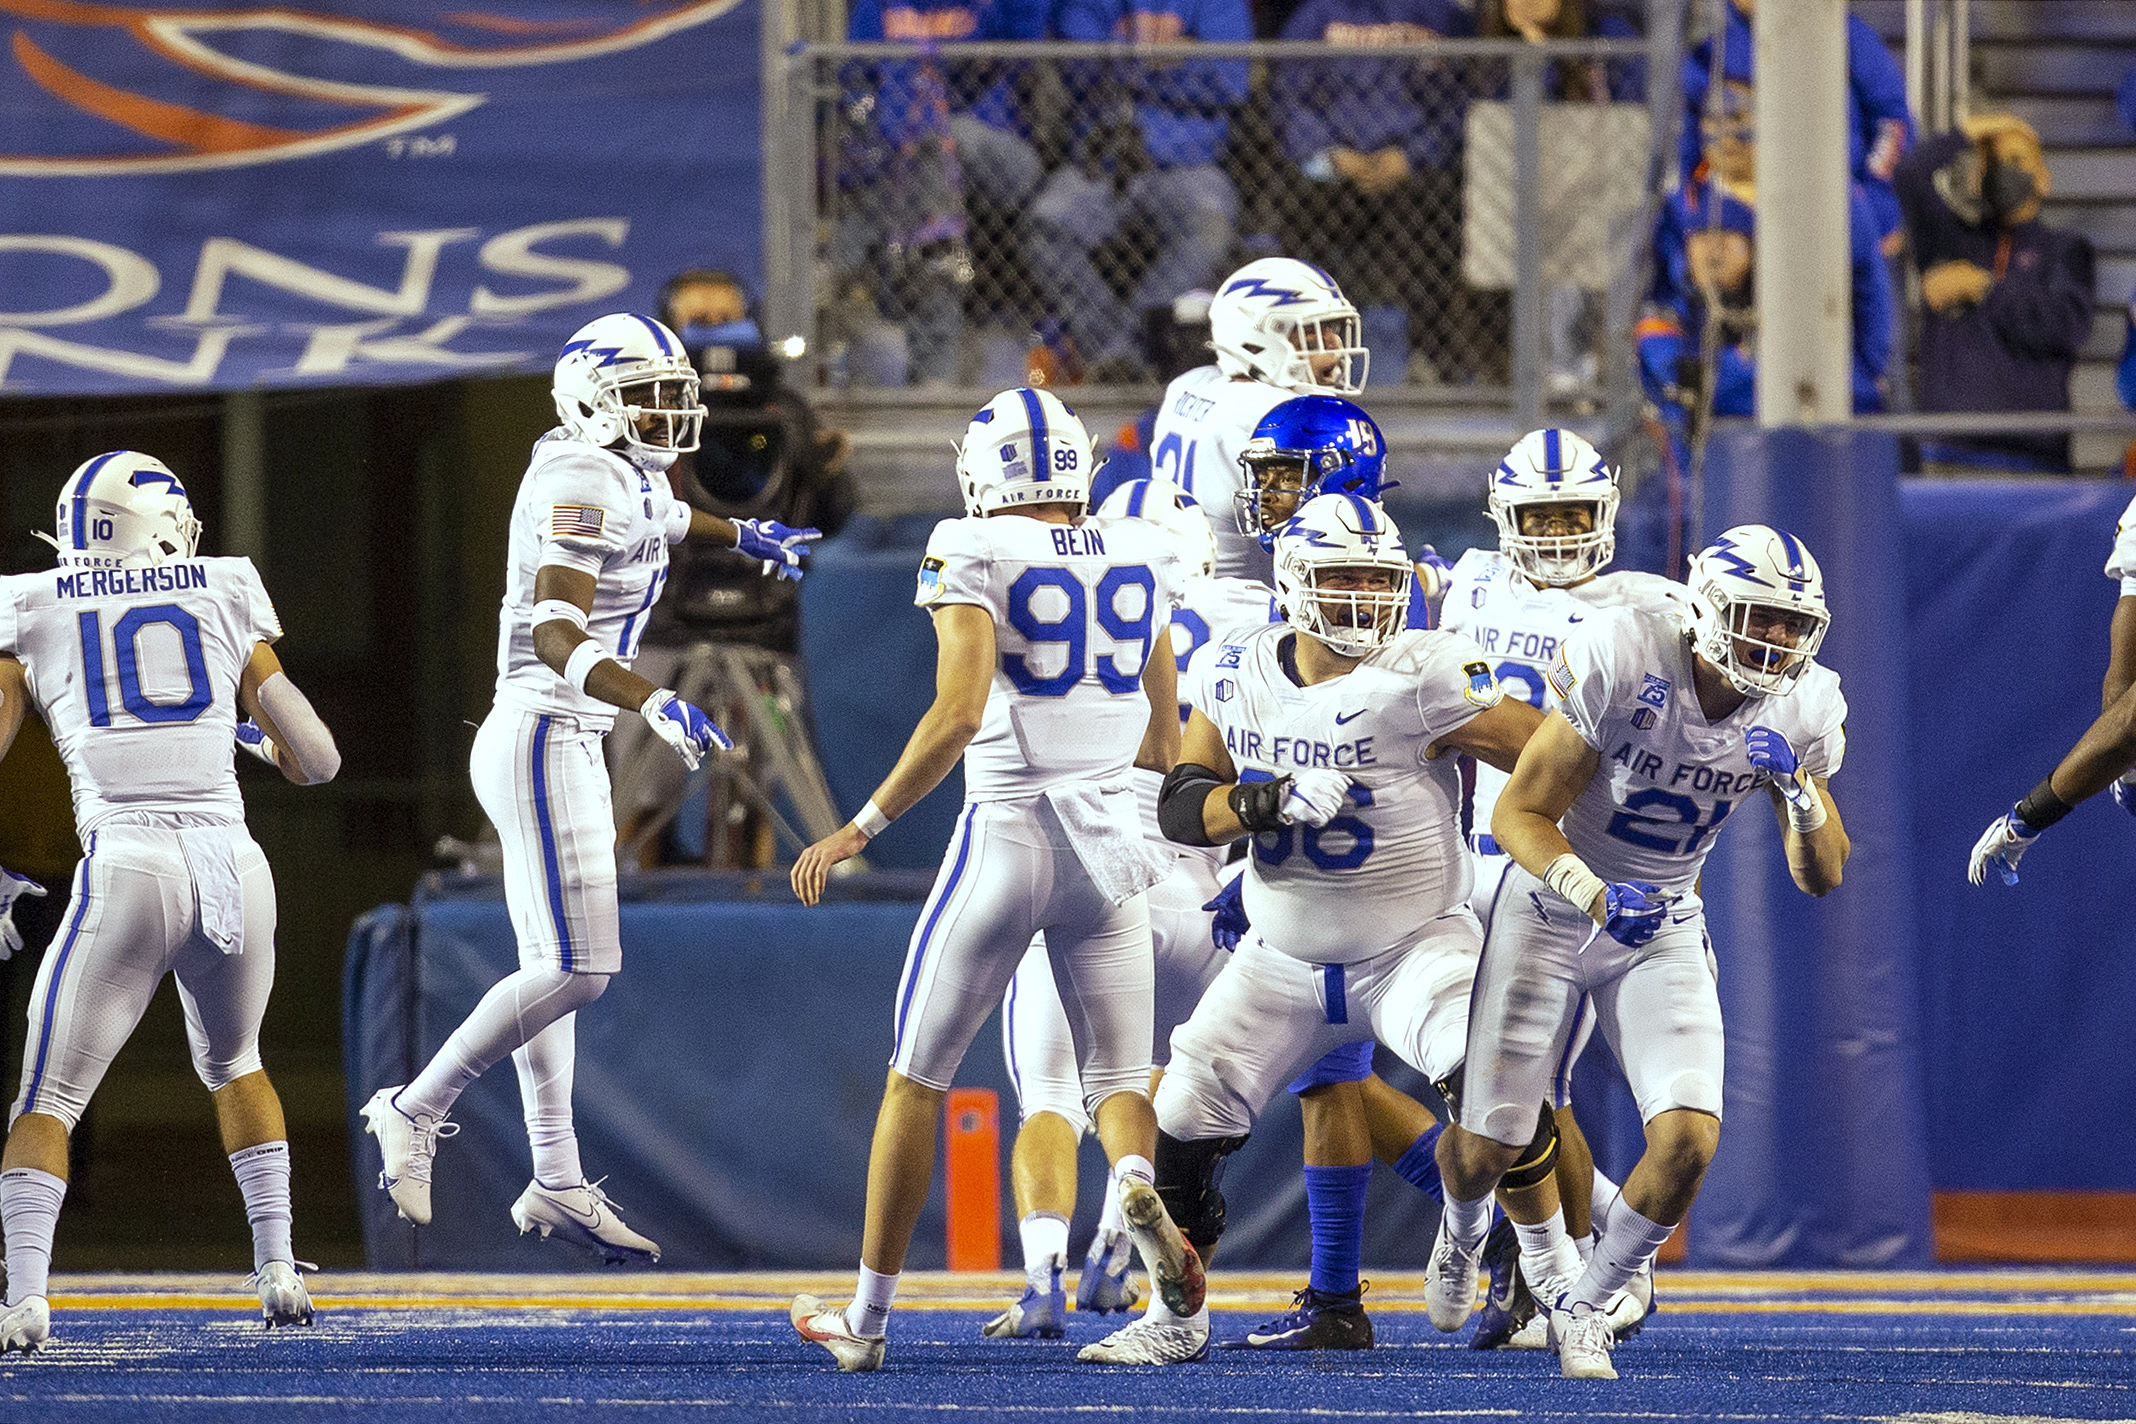 3 Strikes: Air Force football, Paton's Fangio problem and Avs expectations